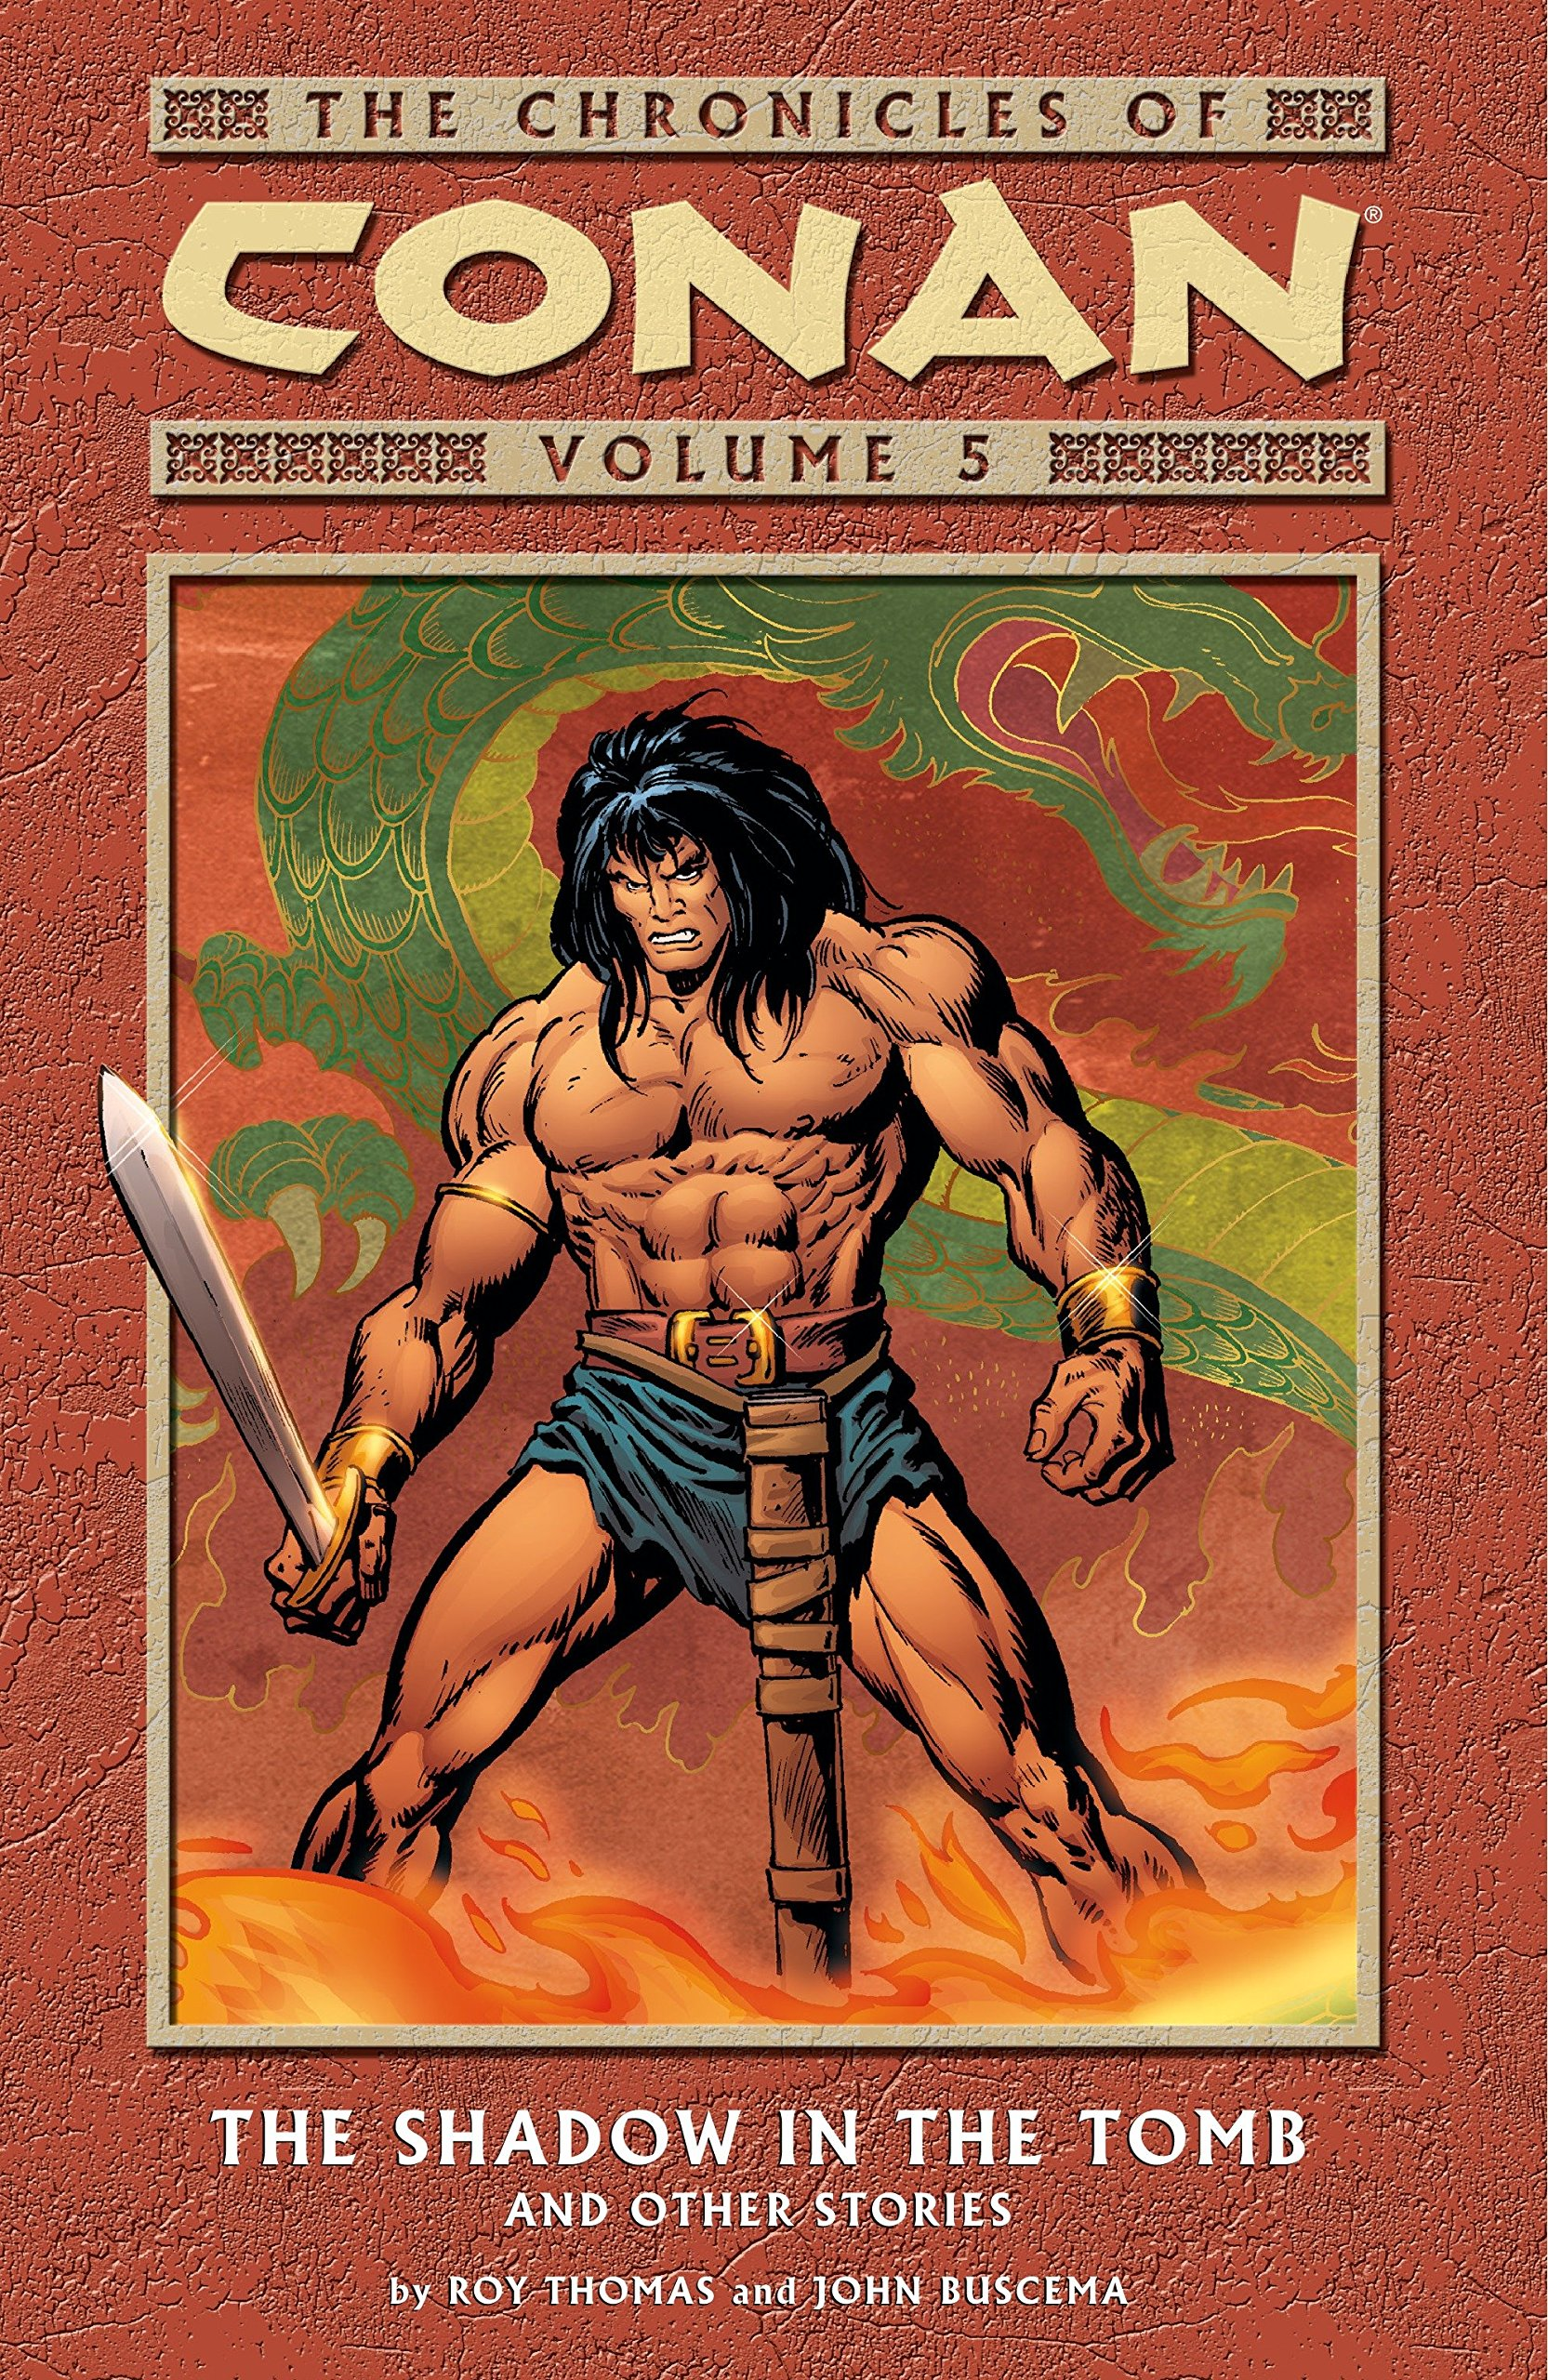 The Chronicles of Conan Vol. 5: The Shadow in the Tomb and Other Stories ebook